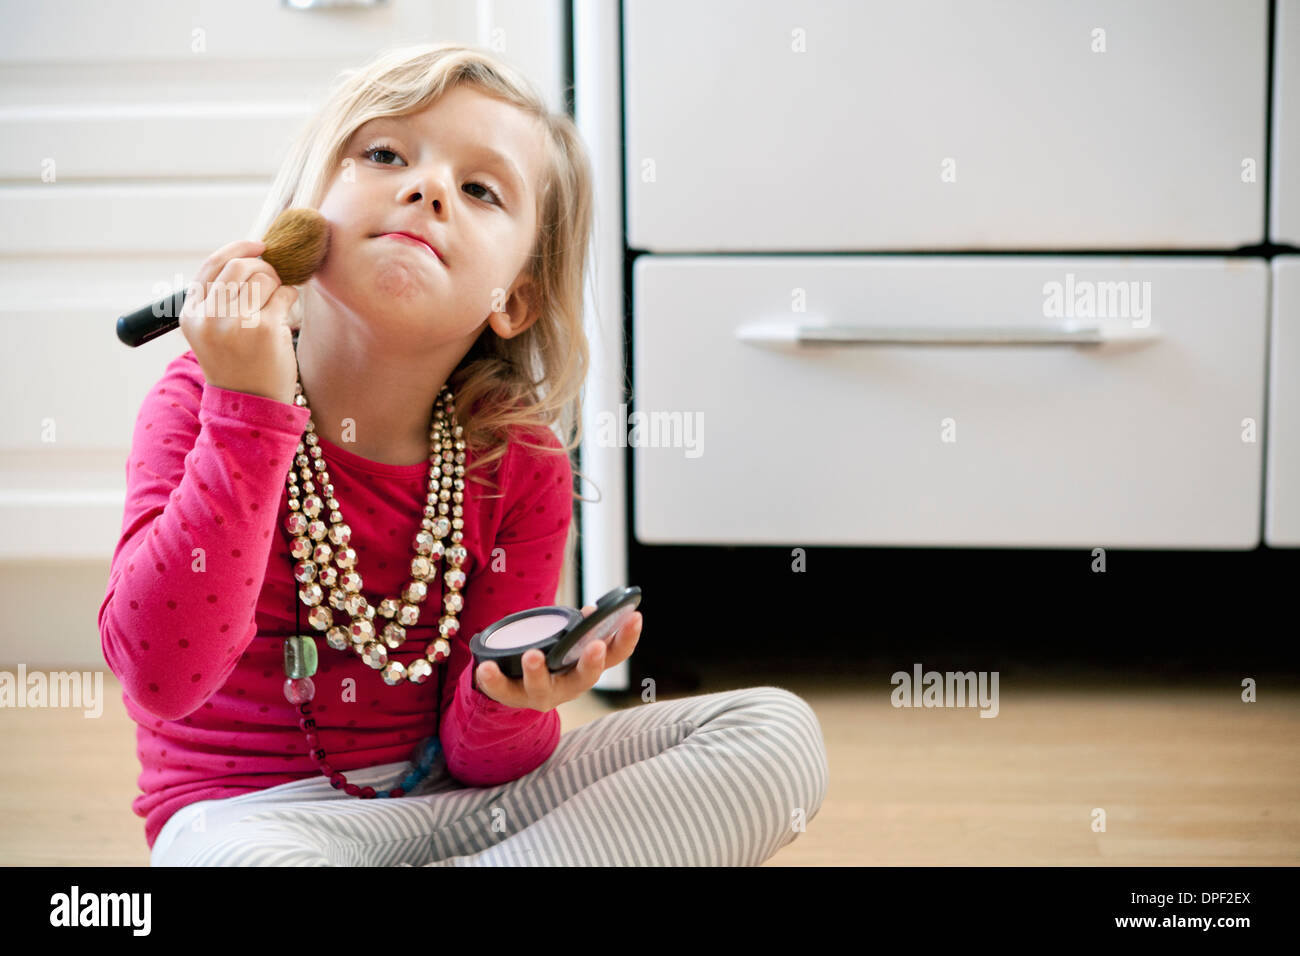 Young girl sitting on kitchen floor with make up - Stock Image